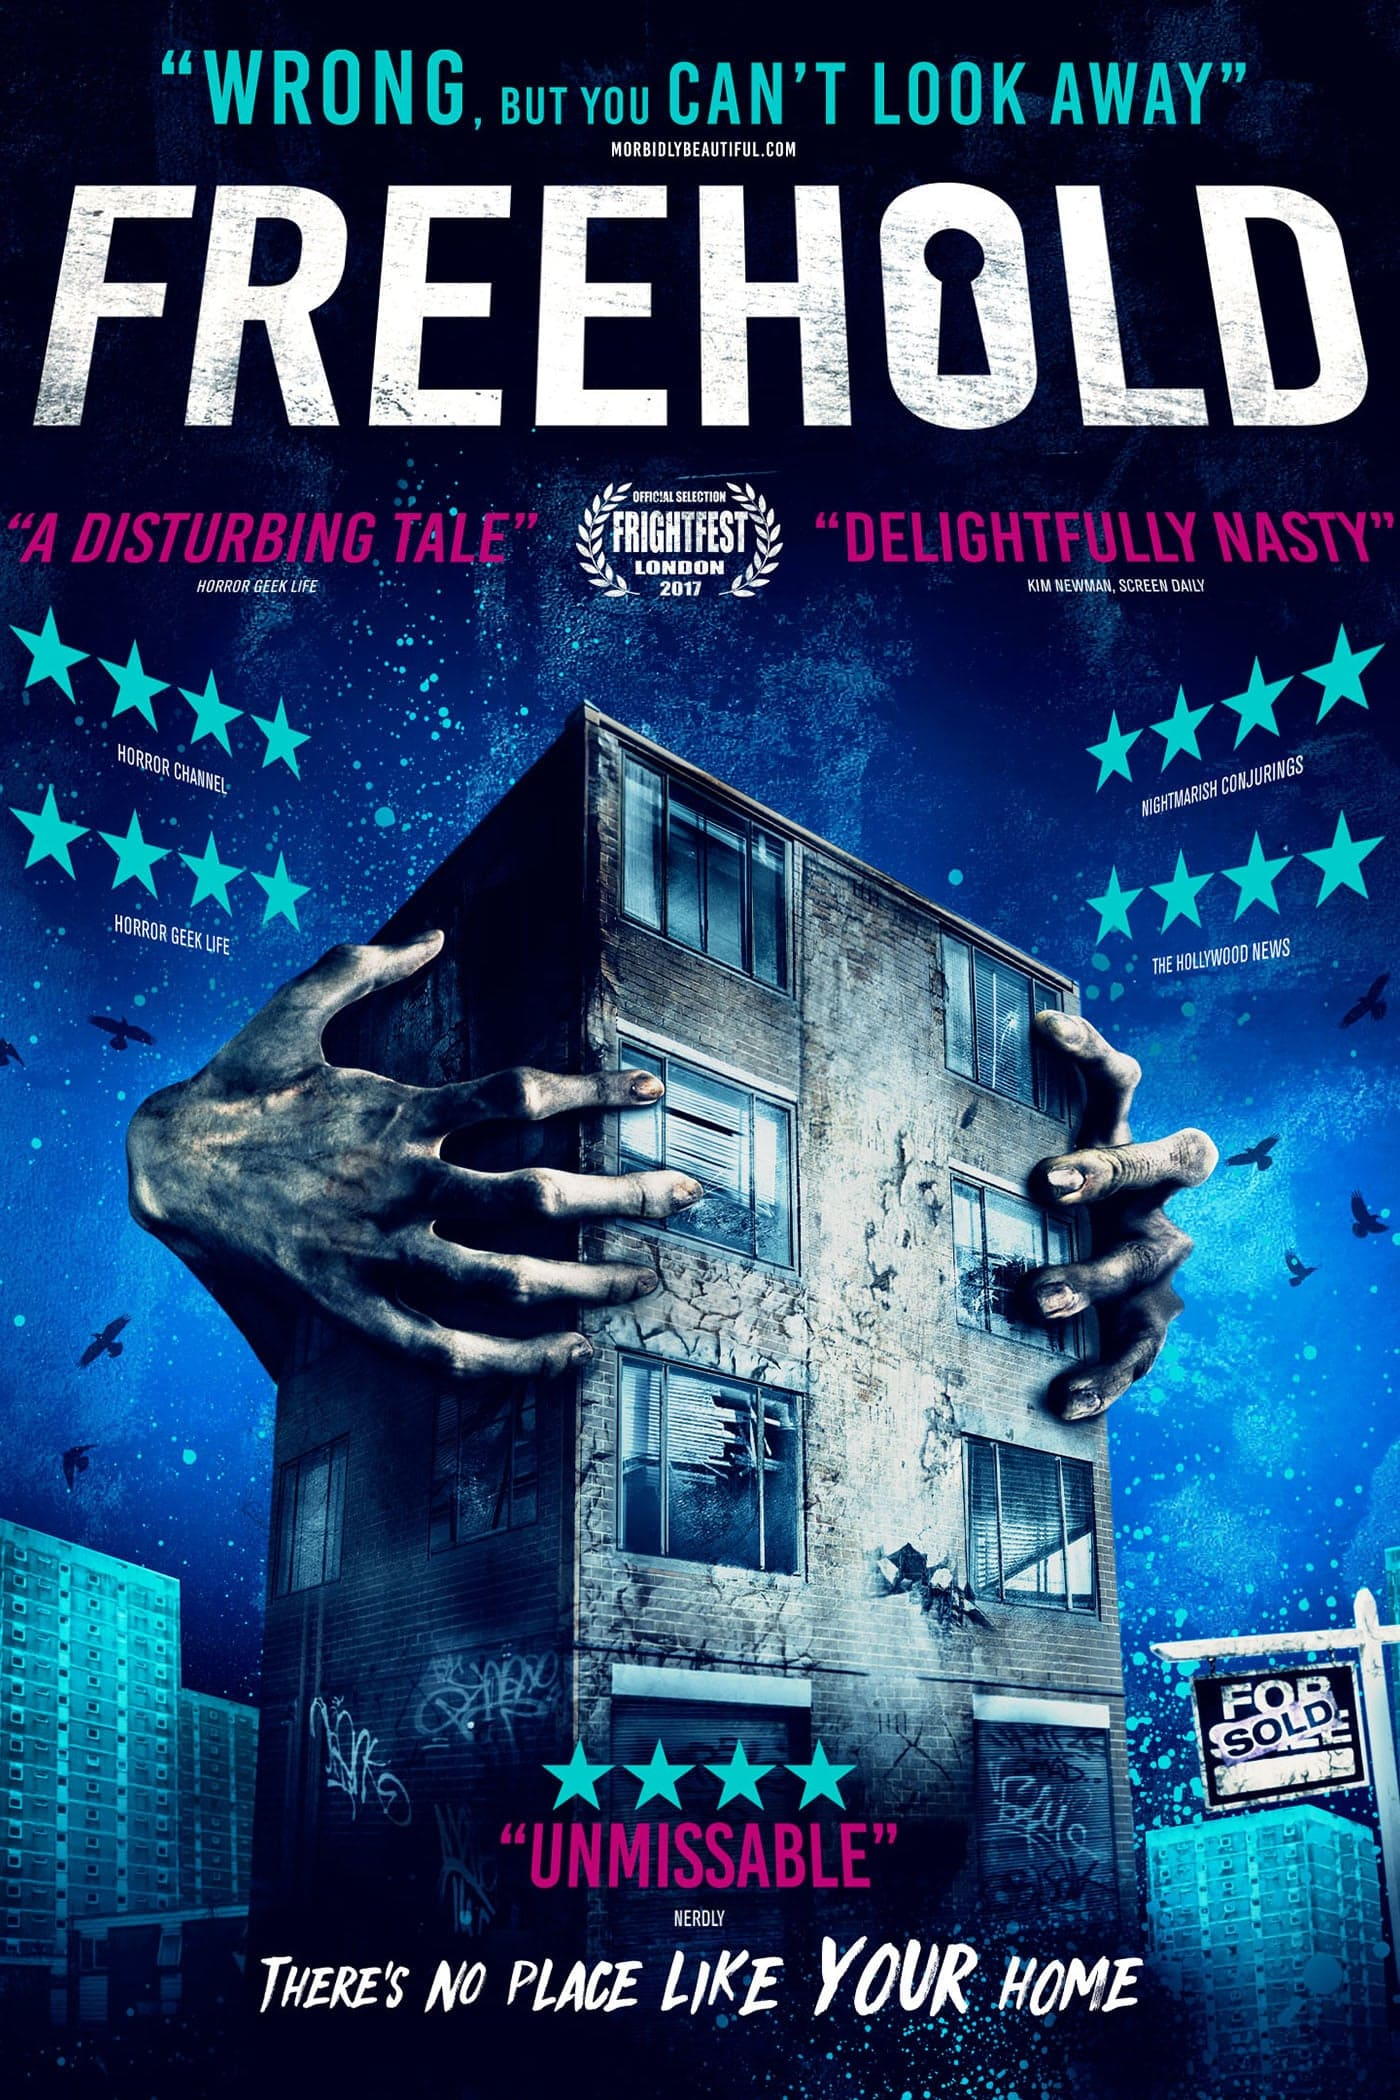 Freehold (2019)